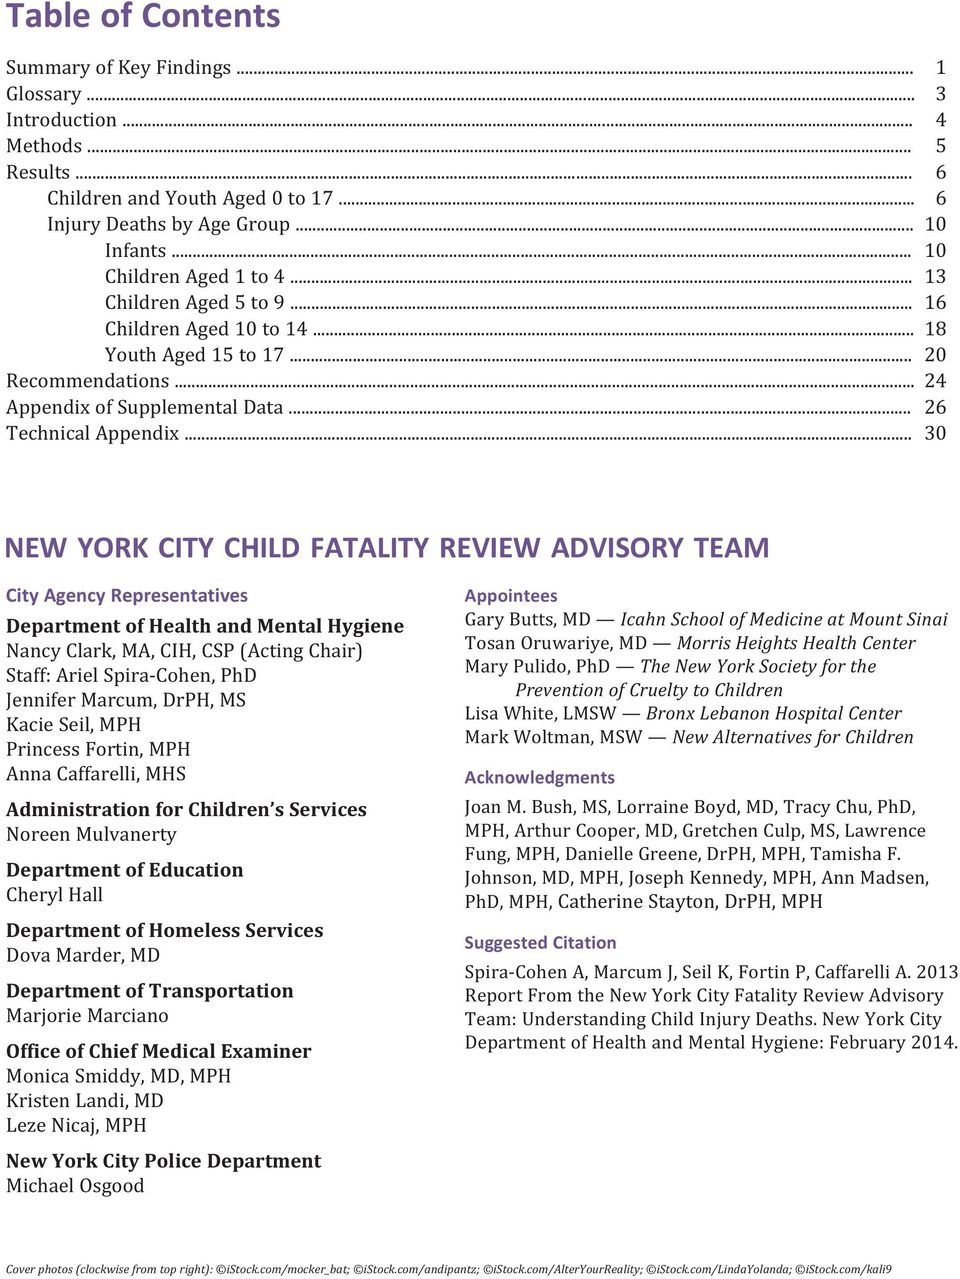 .. 30 NEW YORK CITY CHILD FATALITY REVIEW ADVISORY TEAM City Agency Representatives Department of Health and Mental Hygiene Nancy Clark, MA, CIH, CSP (Acting Chair) Staff: Ariel Spira-Cohen, PhD